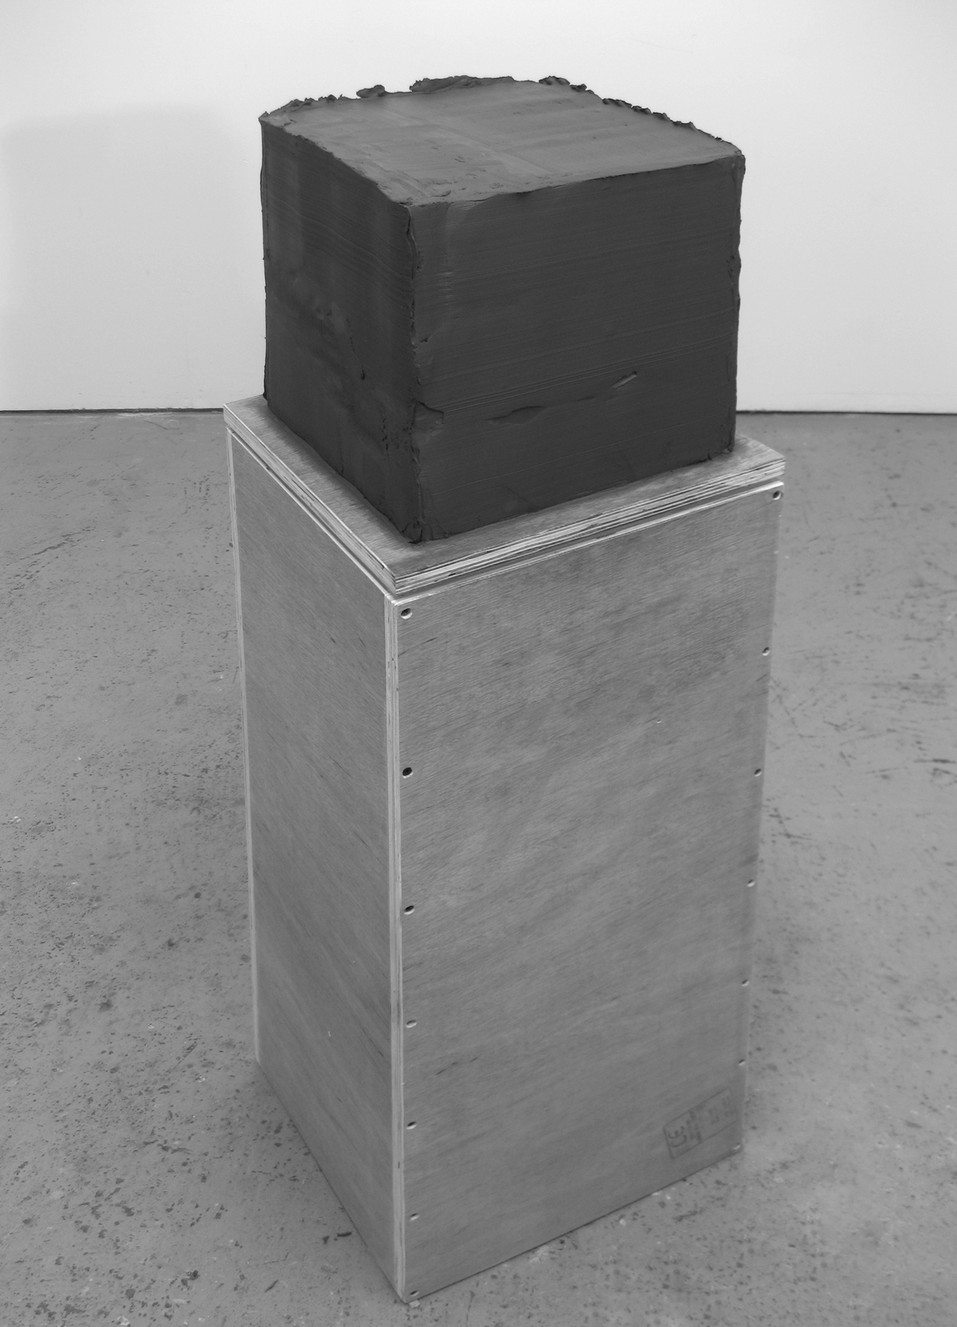 Studio Voltaire Open House Drawing, 2014